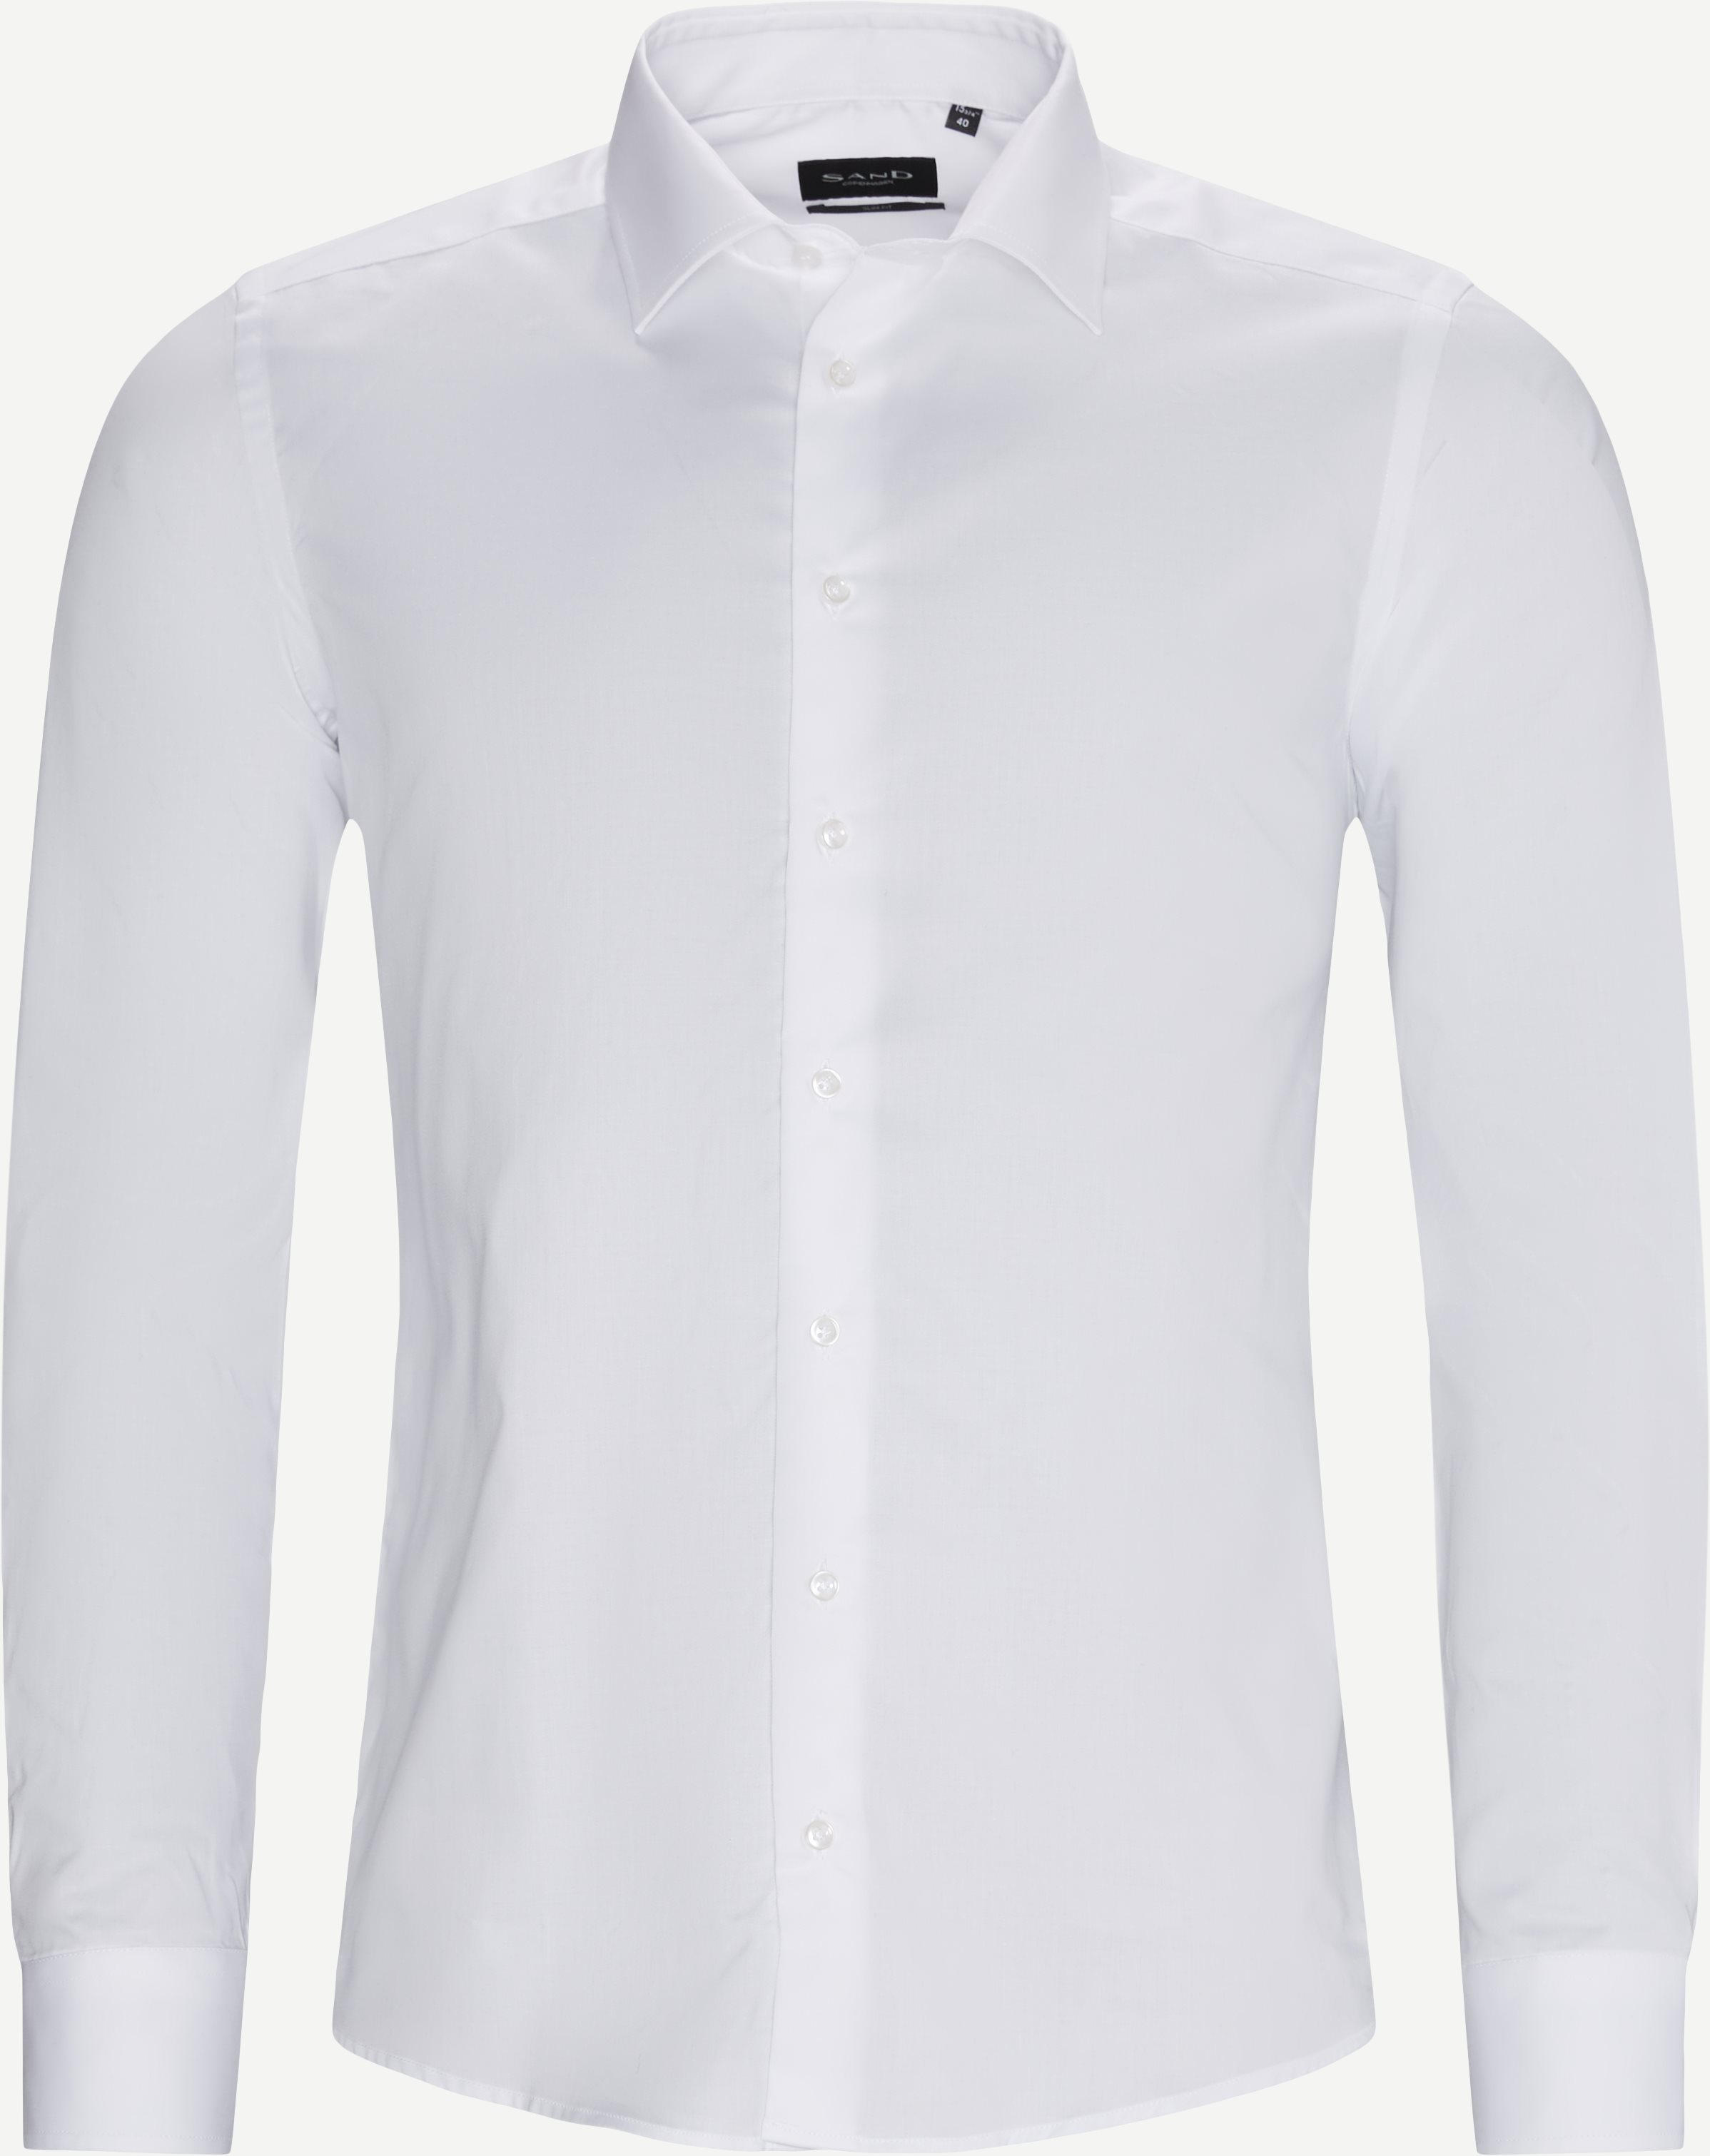 Royal Twill Stretch Iver 2/State N 2 Shirt - Shirts - White